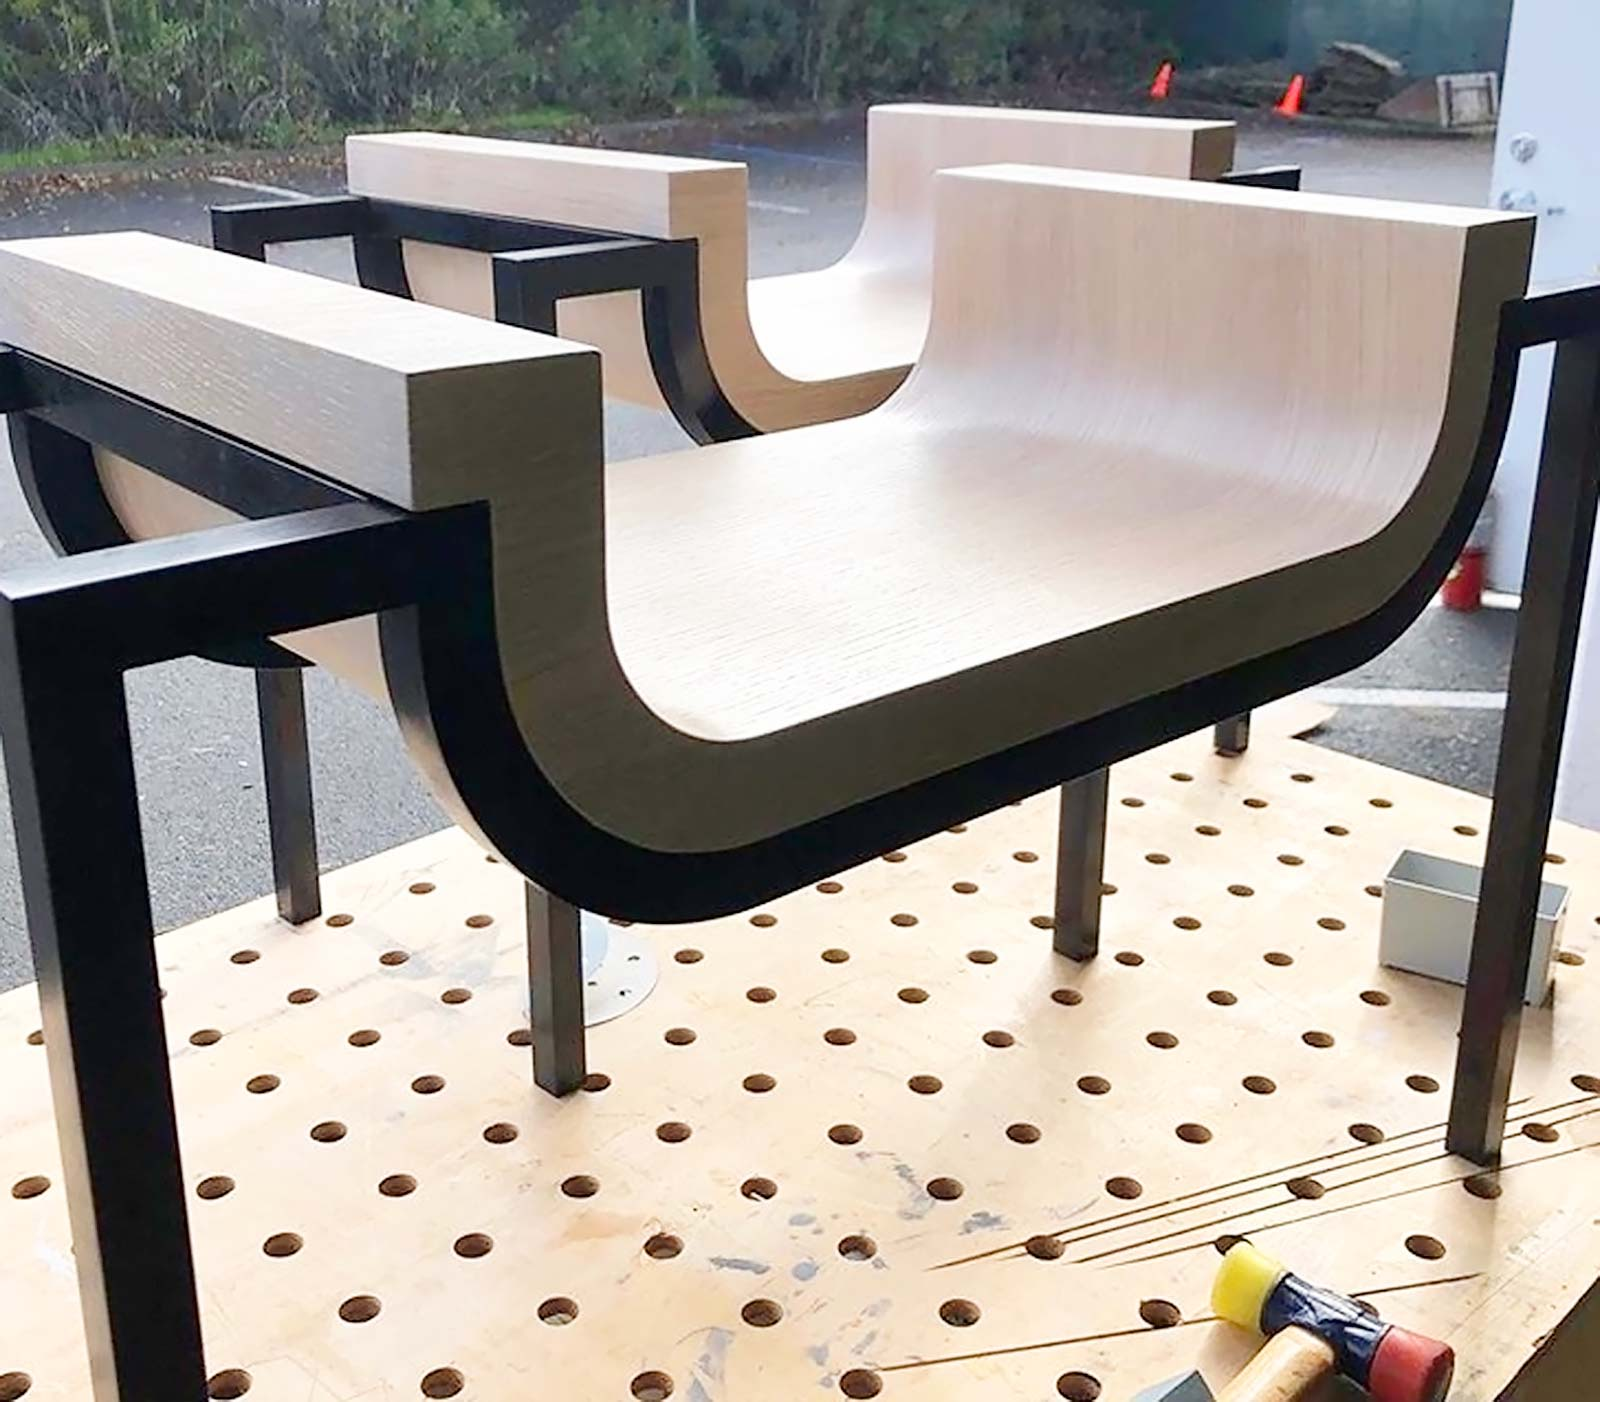 Curved bench leggs